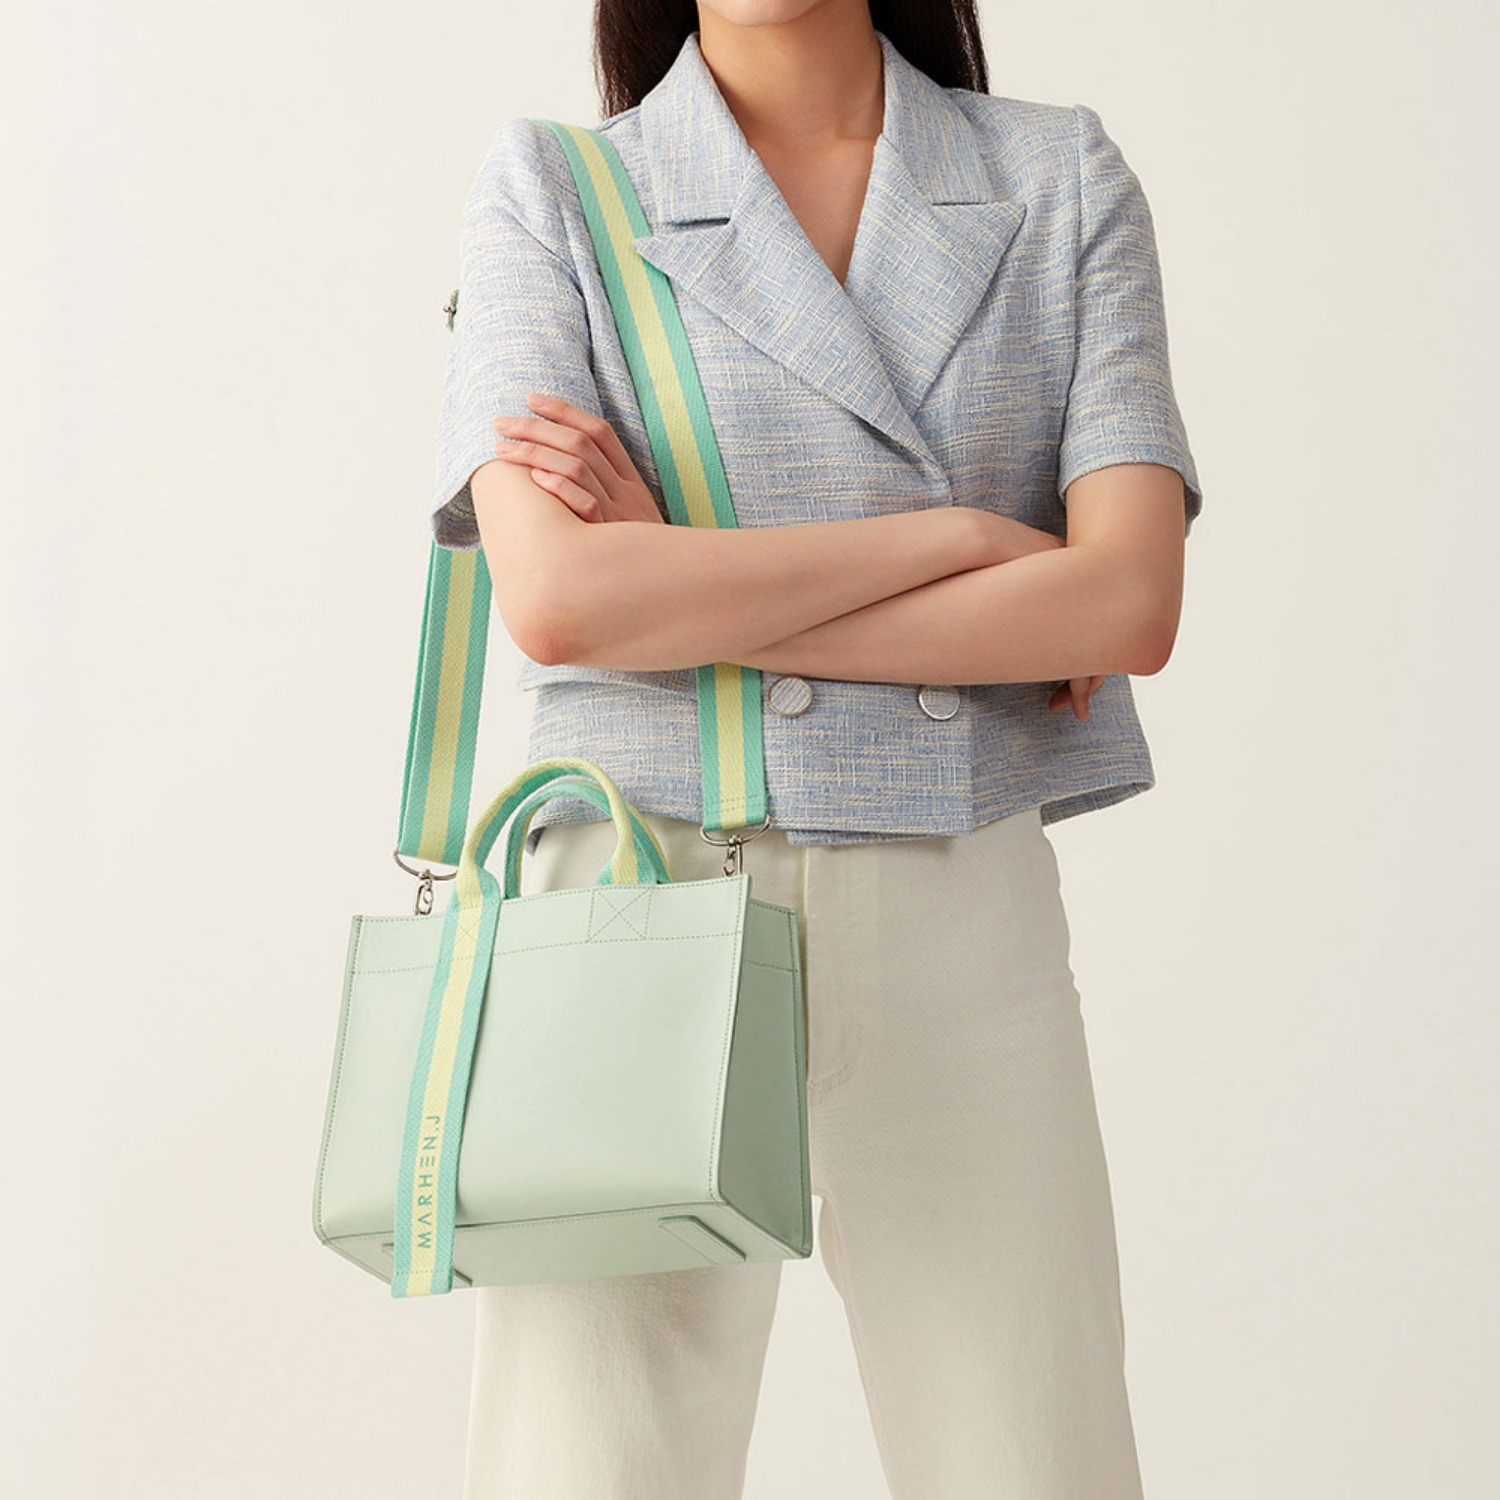 [1st][NEW] CINDY BAG MELON MINT (Length adjustable strap is included)